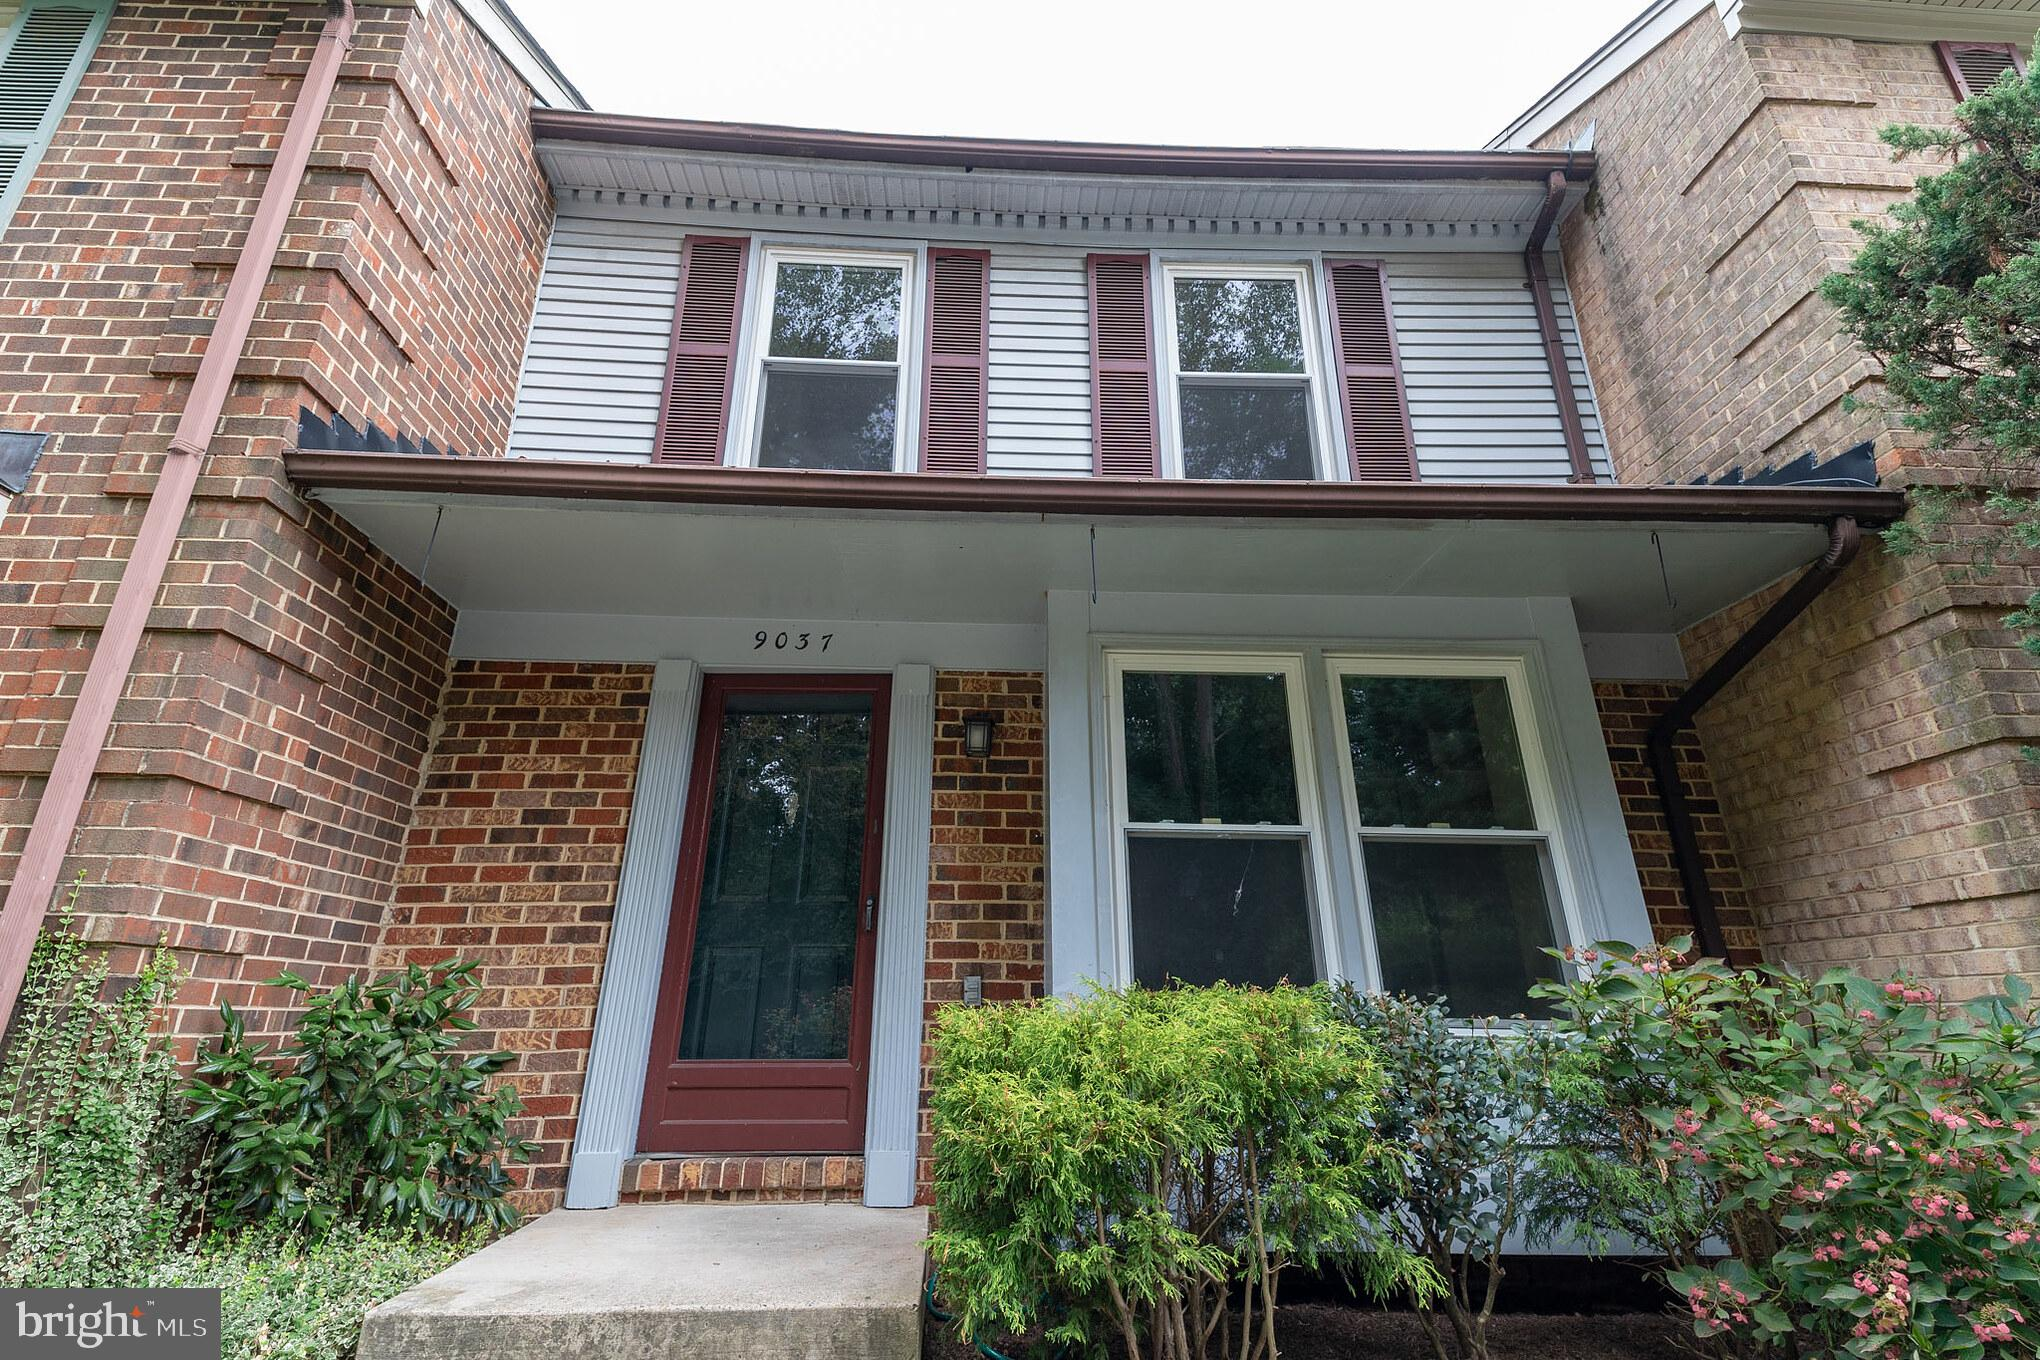 Rare find-Stunning town home in Shannon's Landing. 3 bedrooms 2 full, and 2 half baths. Hardwood floors throughout the middle level.  Fireplace and built-in's in living room. Beautiful kitchen offers lots of extras, stainless steel appliances, appliance garage, expansive counter tops. Generous cabinet space and light make a perfect kitchen.  Generous sized dining room perfect for entertaining. Master Bedroom, boasts 2 closets, ceiling fan, and new carpet in last year. Private master bath. Large dining room, great for formal eating. Large Basement includes tile flooring throughout,  walk out to patio.  Large shed, with electrical, great for both projects and storage. Take a look at this move-in ready townhouse!